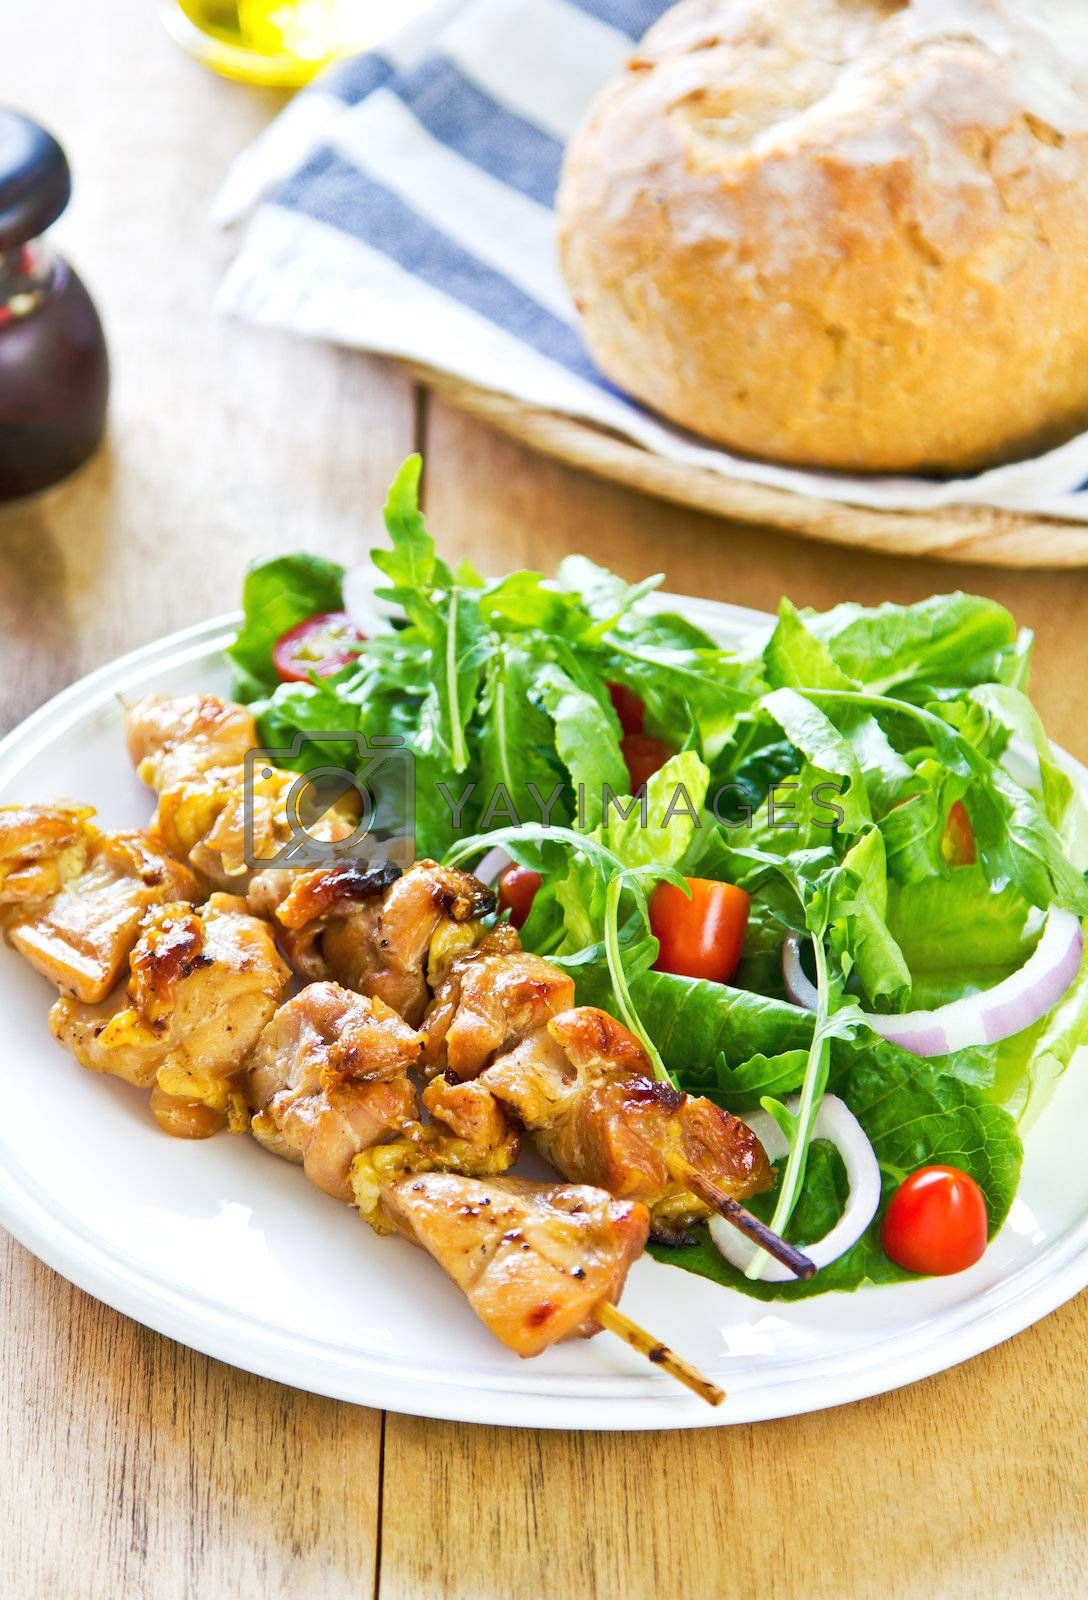 Royalty free image of Grilled chicken skewer with salad by vanillaechoes